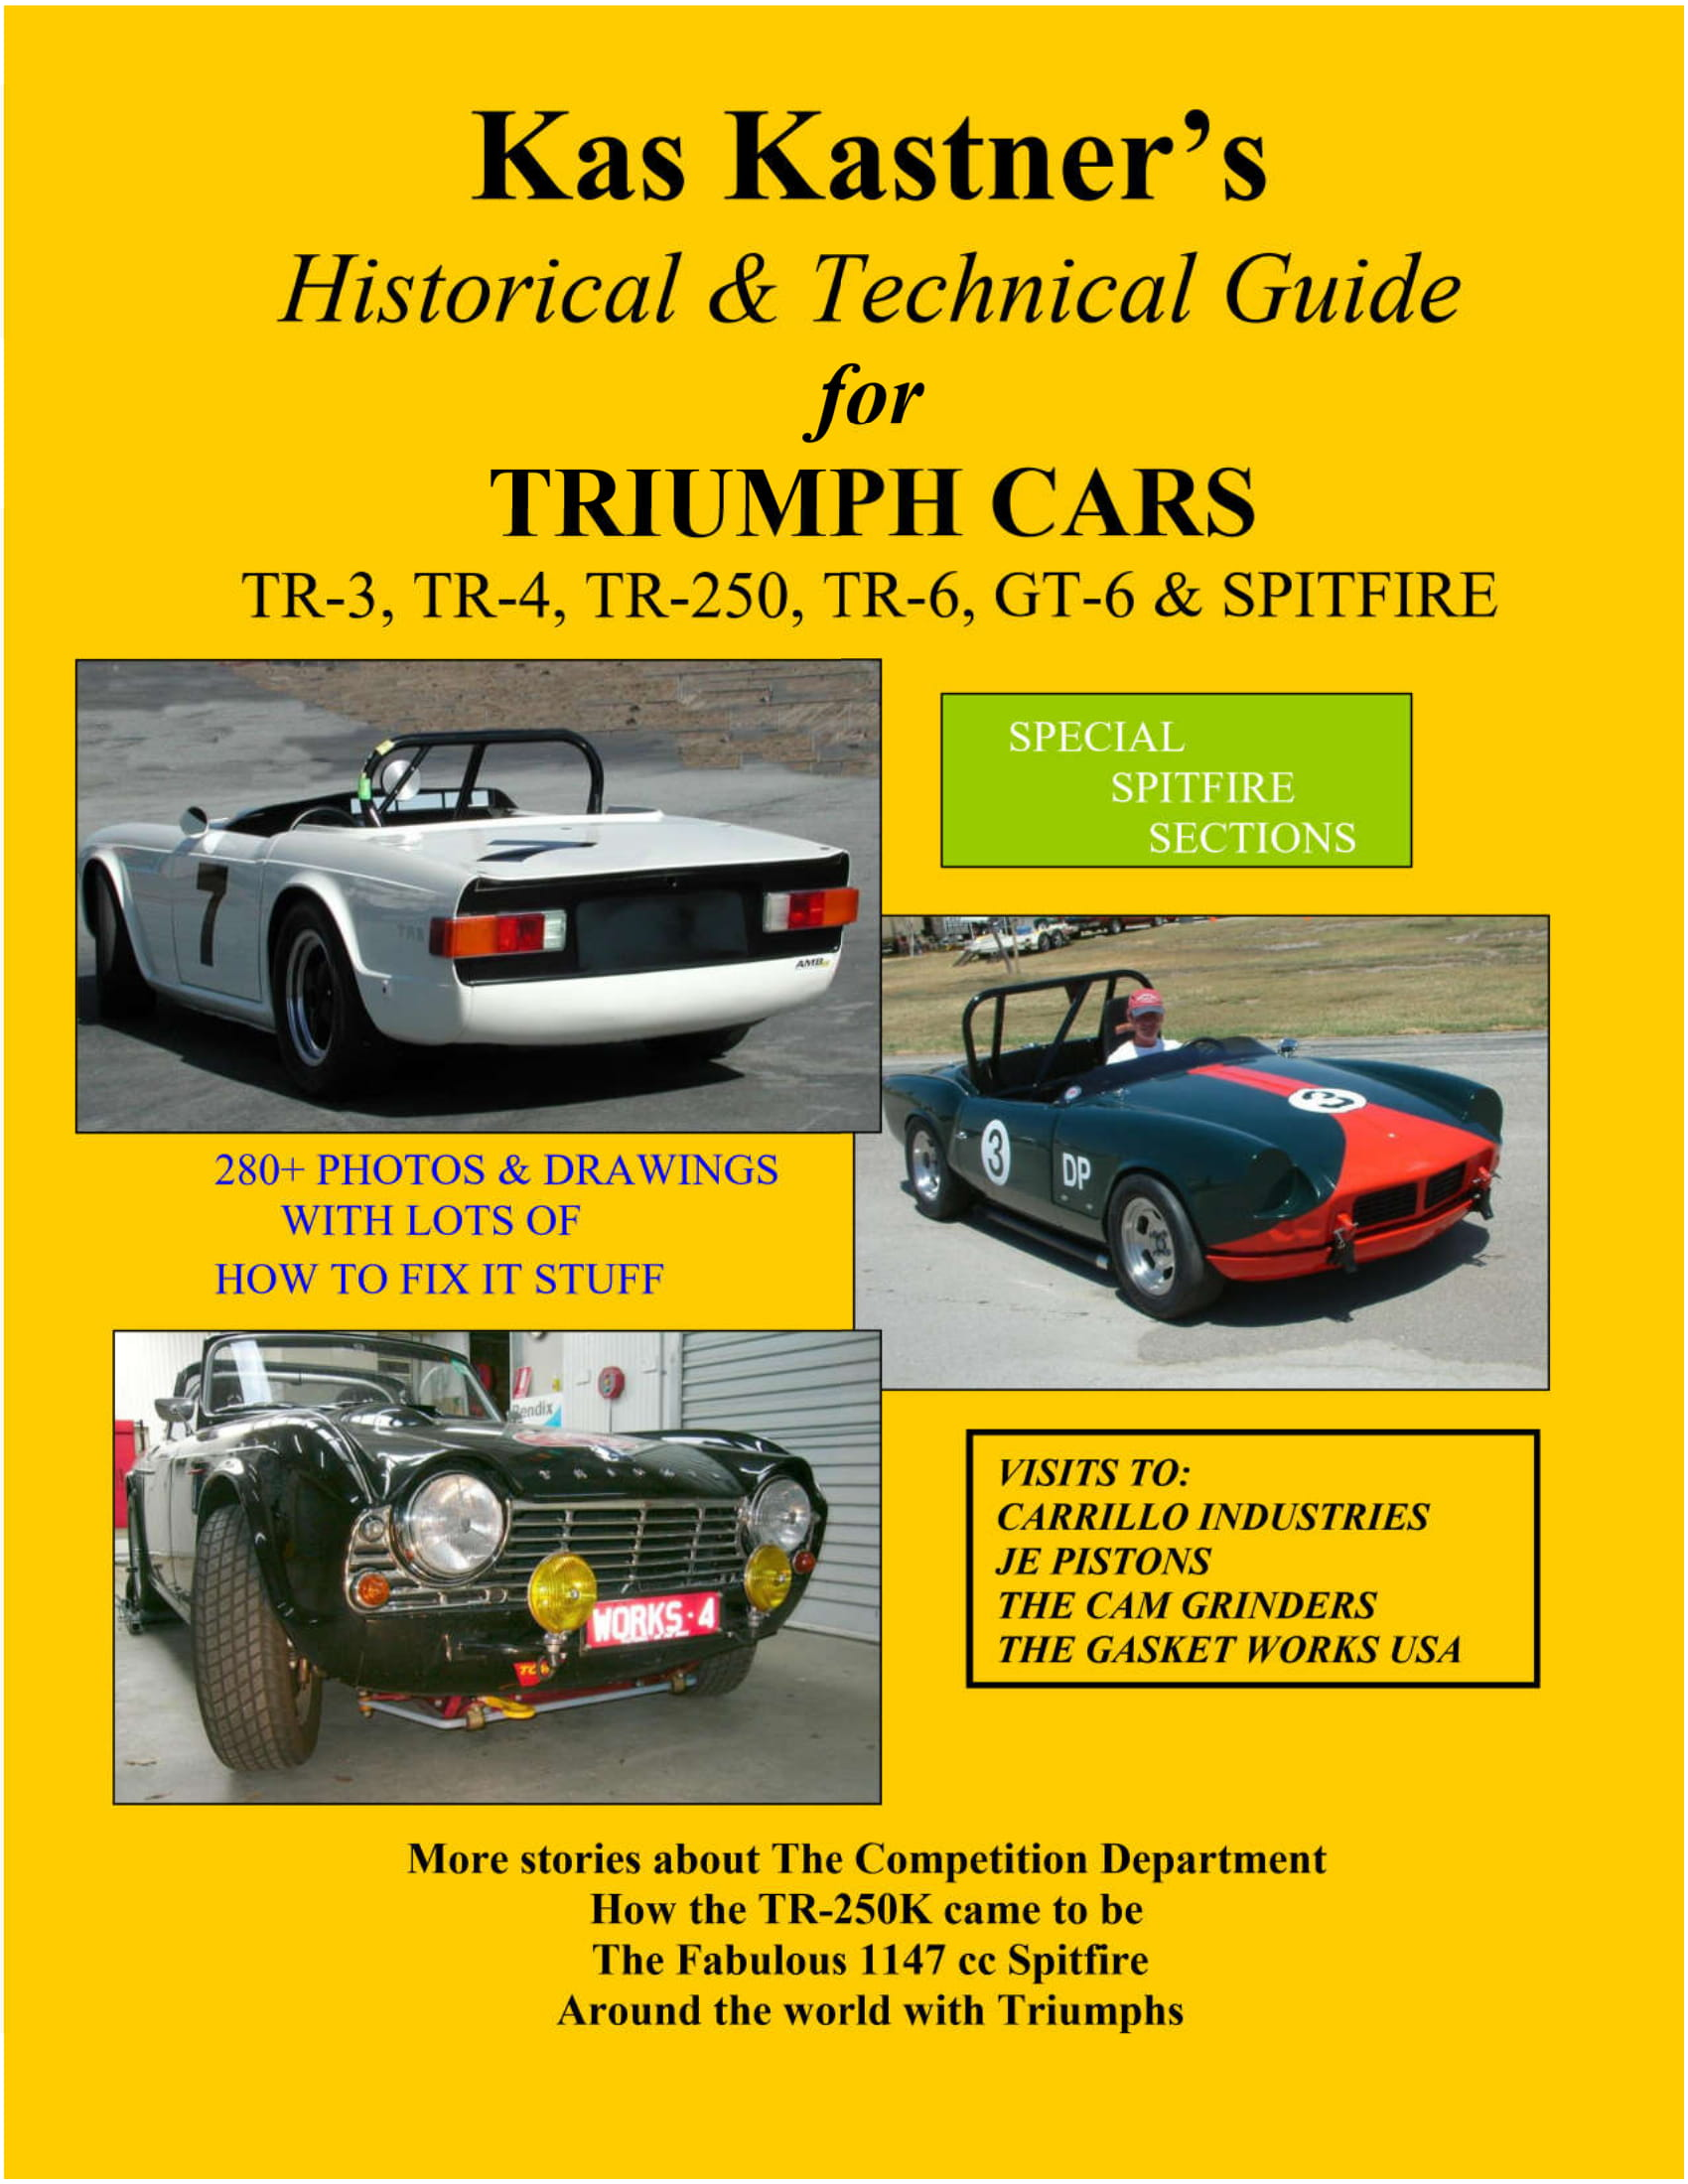 Kas Kastner's Historical and Technical Guide for Triumph Cars